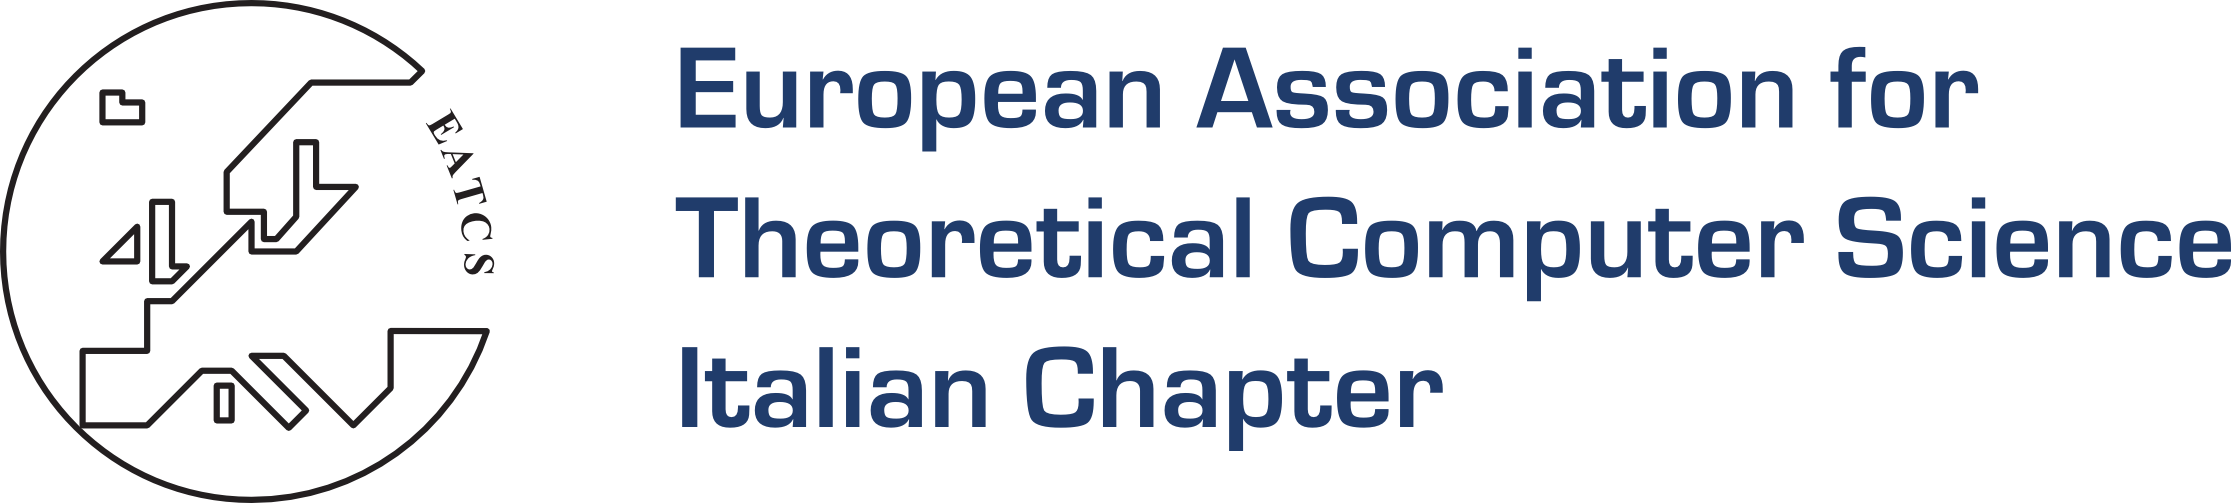 European Association for Theoretical Computer Science Italian Chapter (ICTCS)